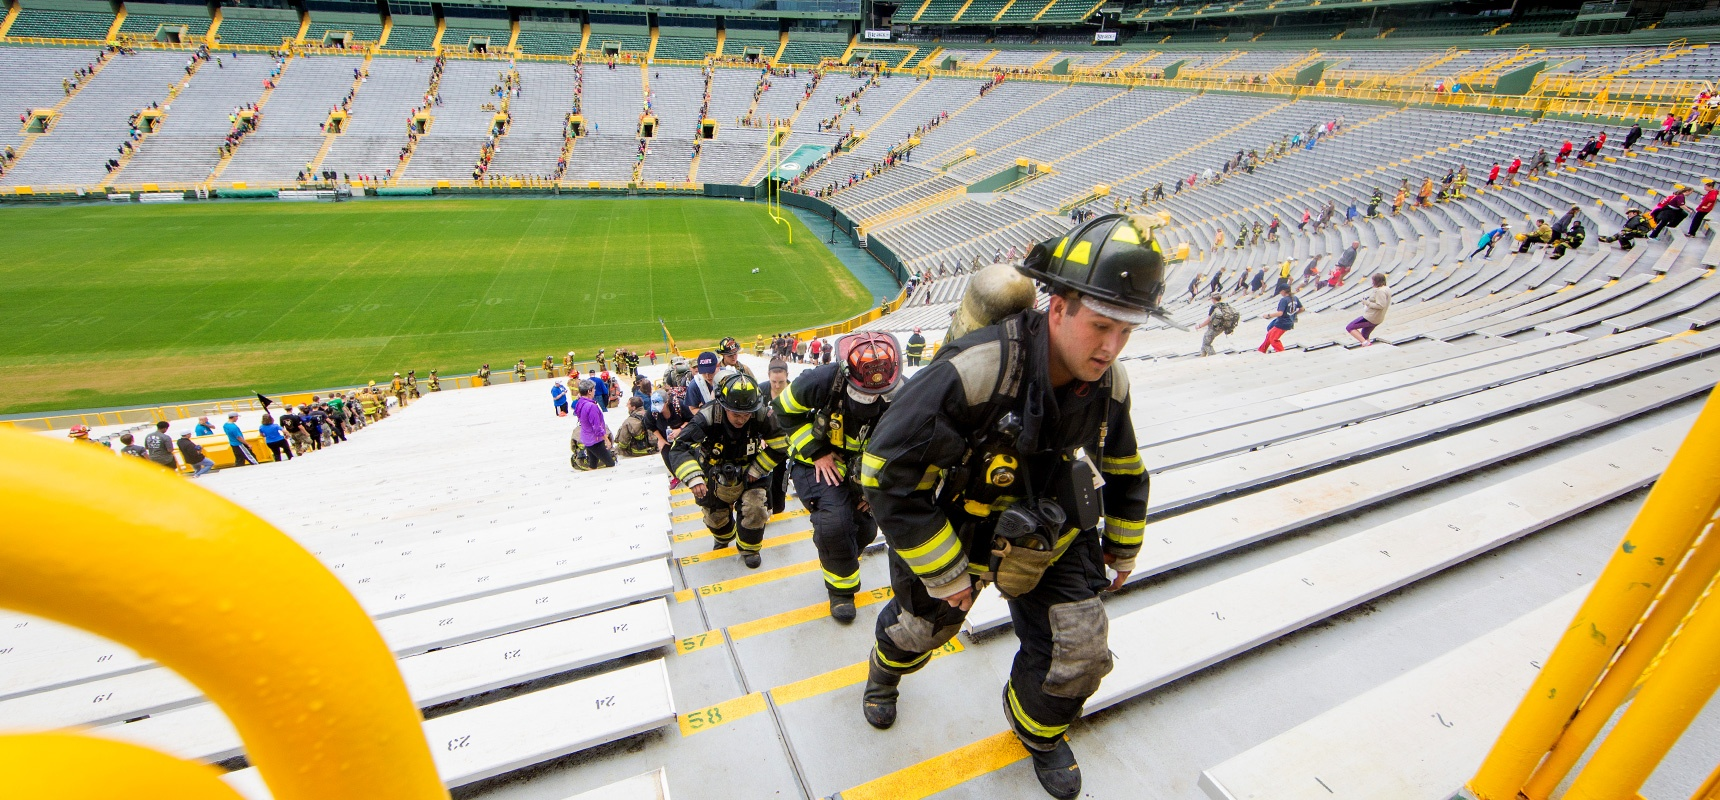 Area-Communities-Come-Together-and-Pay-Tribute-to-Fallen-Firefighters-at-Nations-Largest-9-11-Memorial-Stair-Climb_Header.jpg